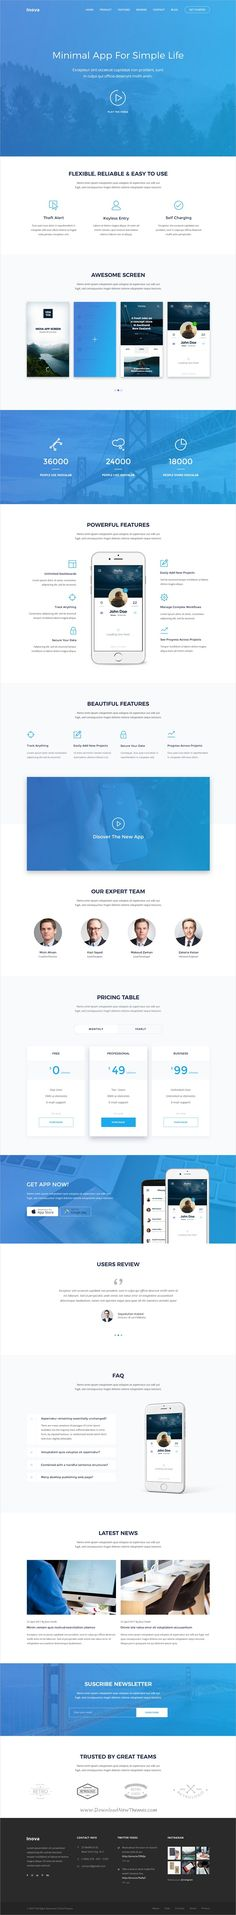 Inova is a PSD template for a wide variety of landing pages such as Product, SaaS, App, Startup, Marketing Landing Pages. It comes with 08 Fully Layered PSDs and tons of features that will c. Landing Page Inspiration, Web Design Inspiration, Design Ideas, Web Layout, Layout Design, Mobile Landing Page, Macbook, Information Architecture, Web Design Projects